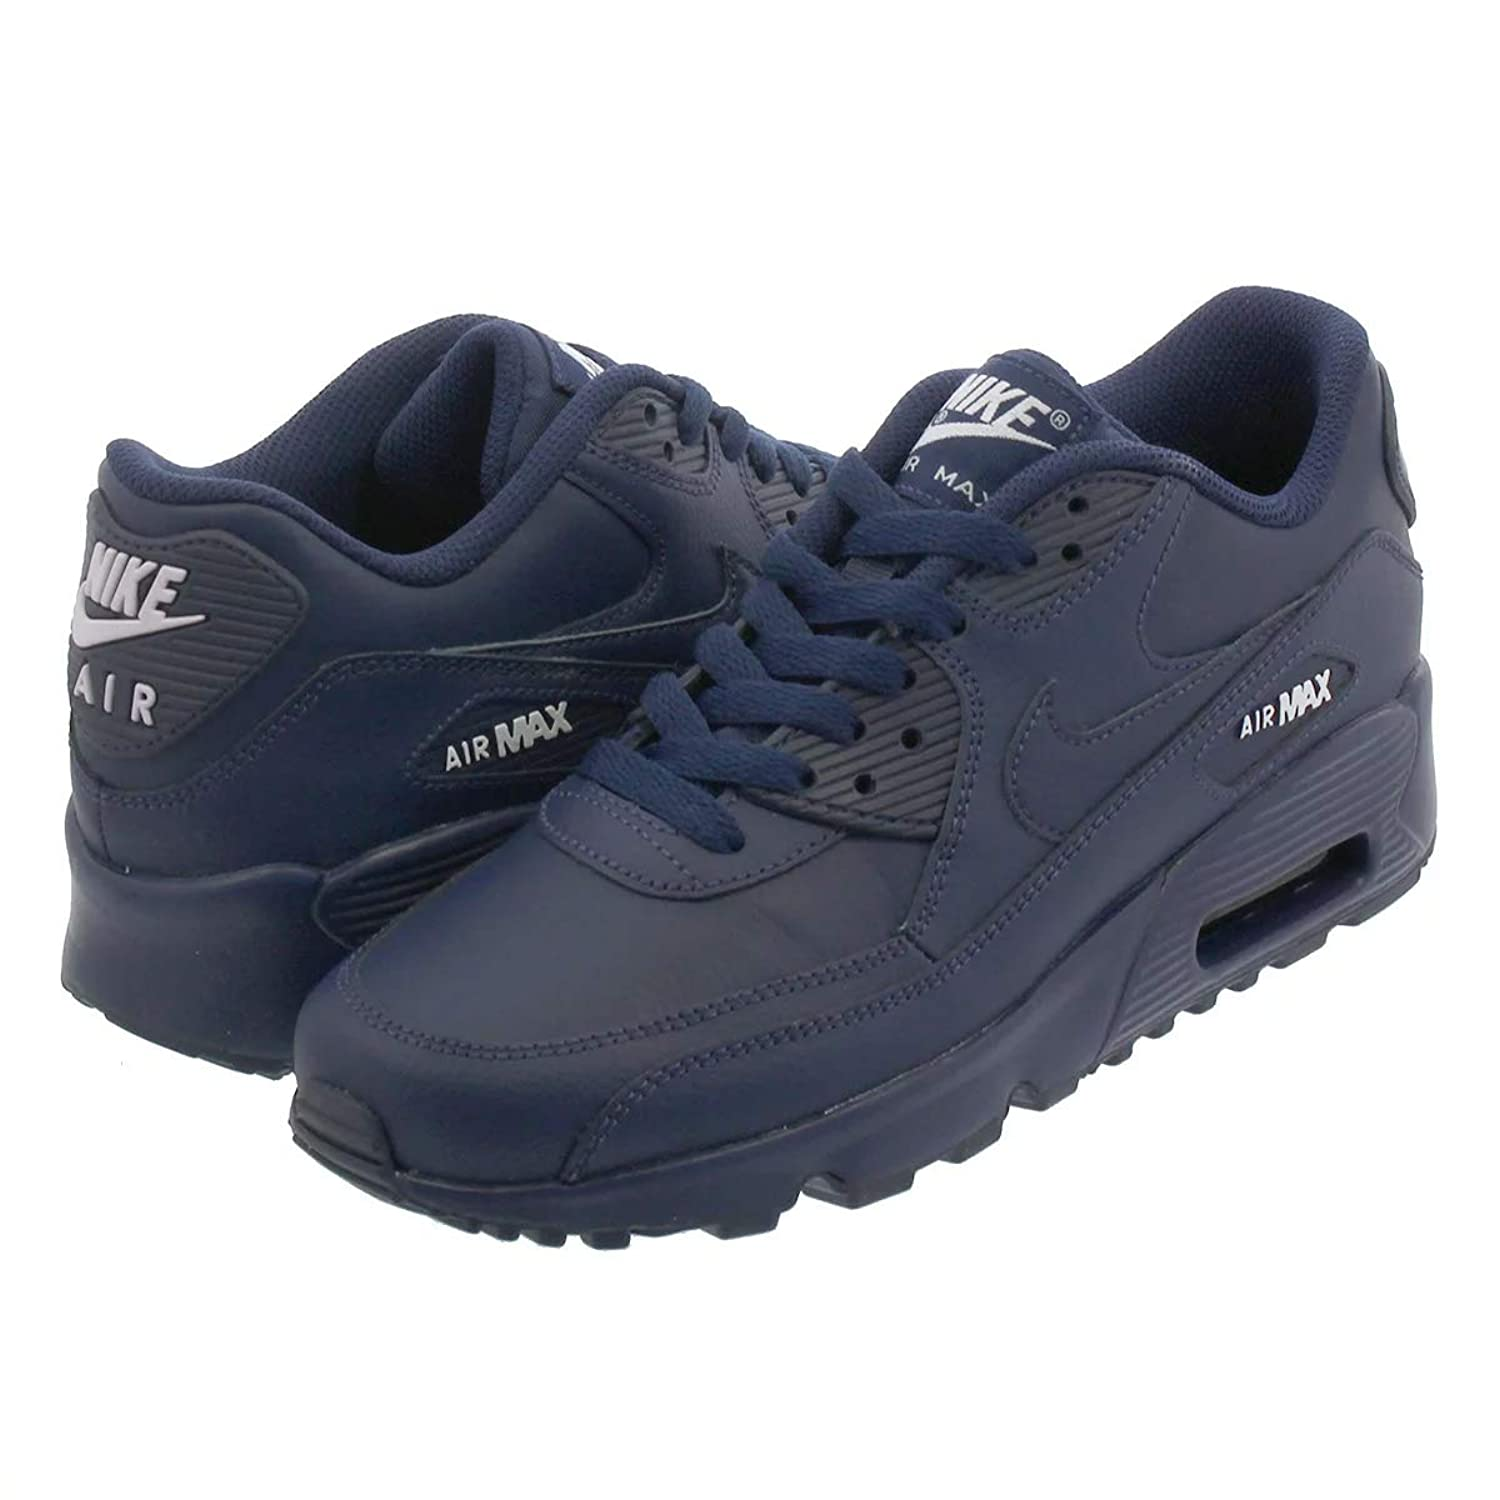 [ナイキ] AIR MAX 90 LTR GS MIDNIGHT NAVY/WHITE [並行輸入品]